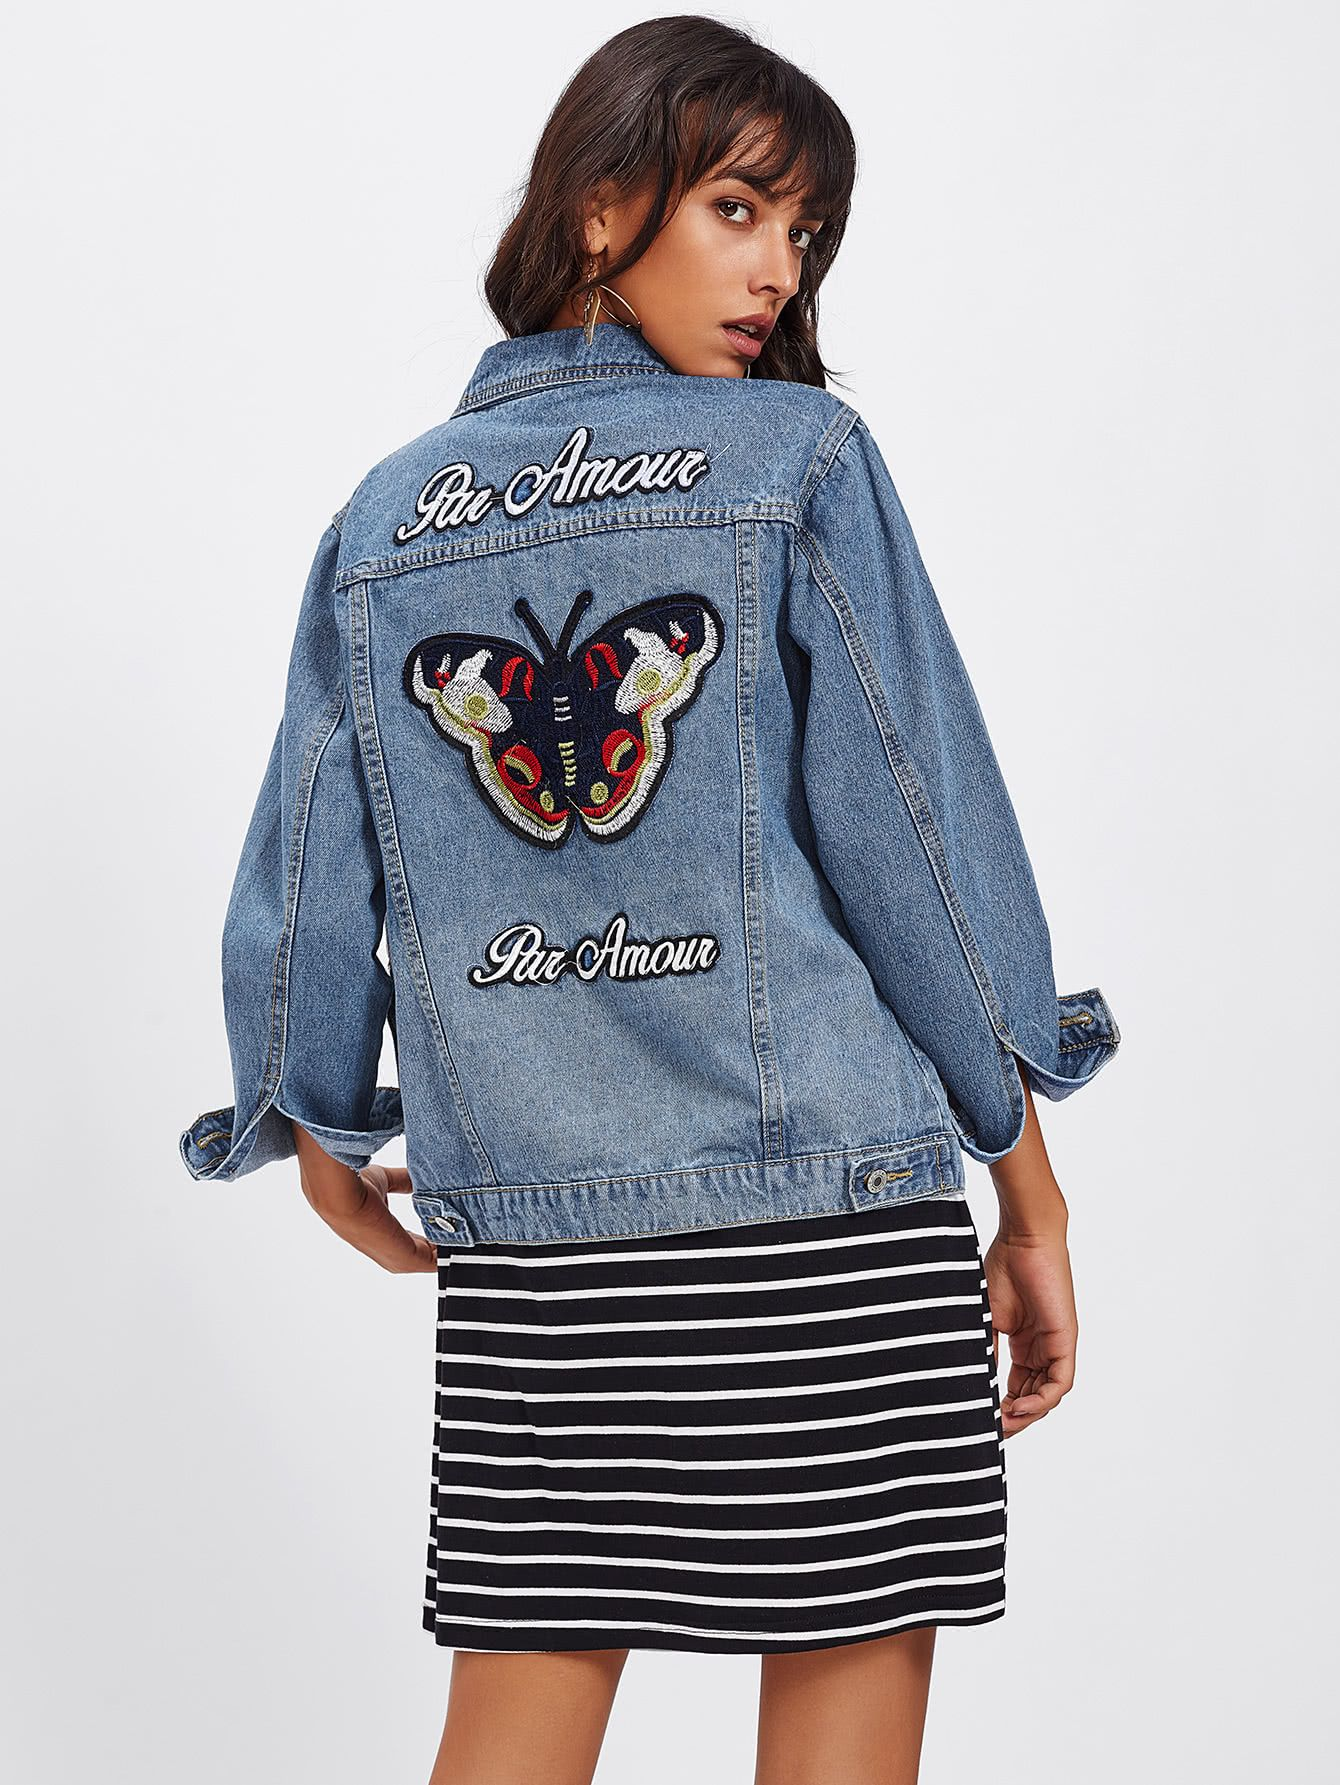 477225ca4a Butterfly Embroidered Back Denim Jacket -SheIn(Sheinside ...